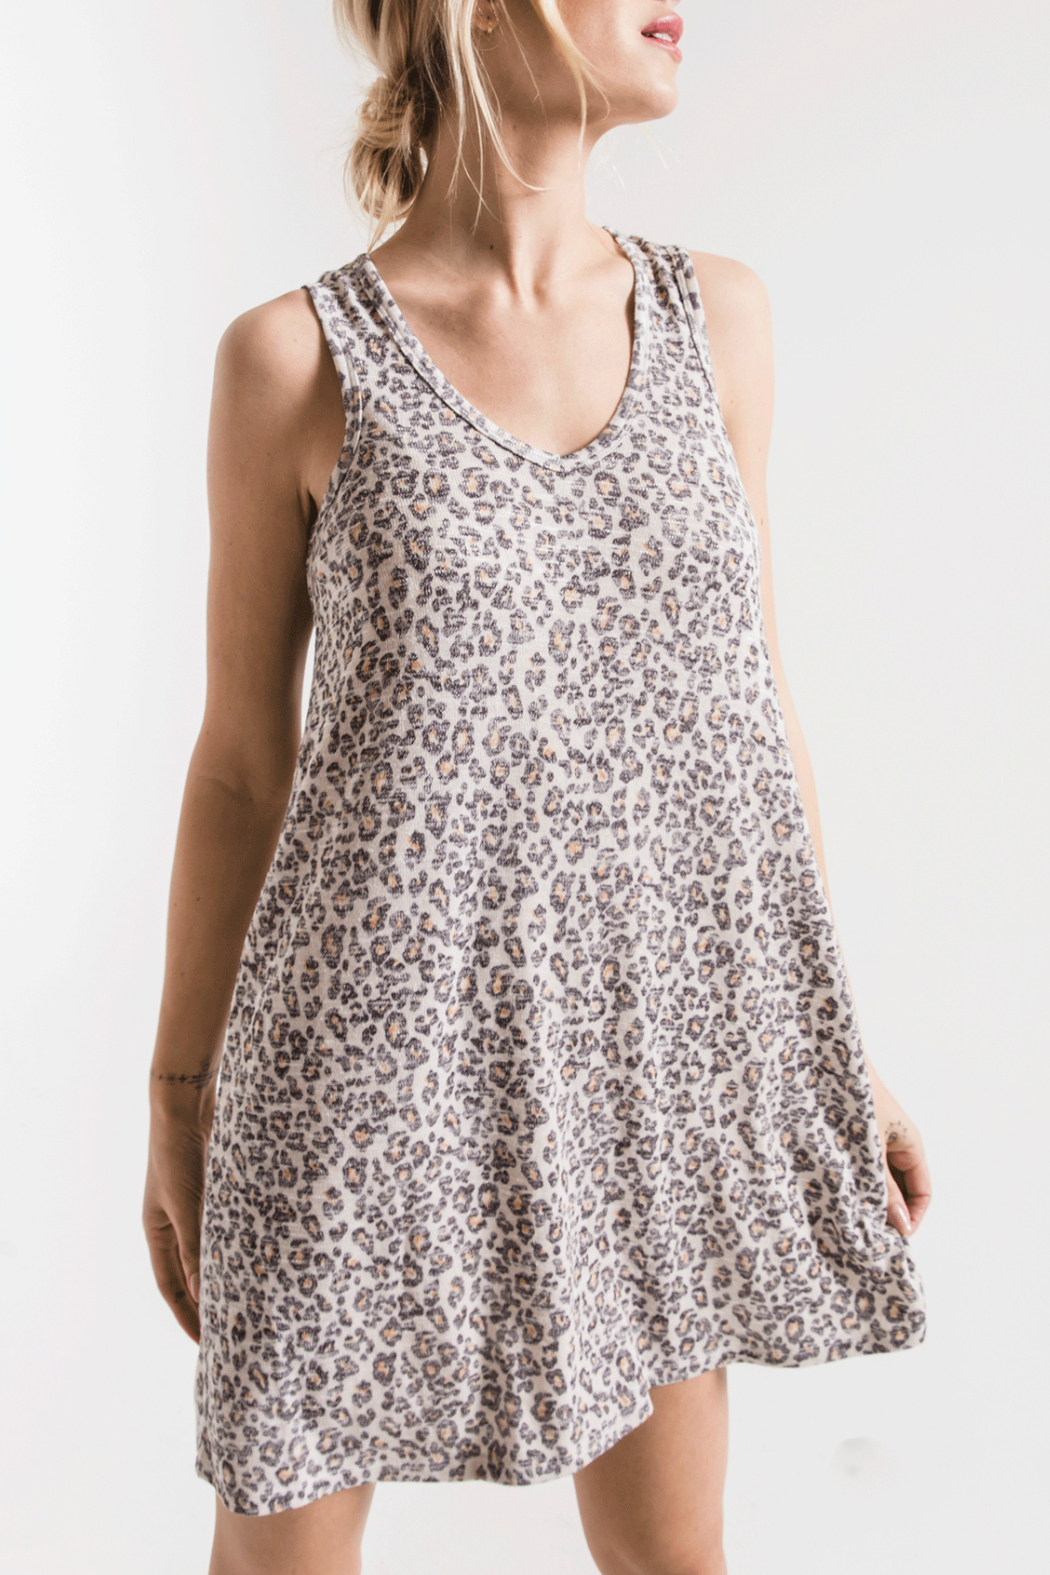 z supply Breezy Leopard Tank Dress - Front Cropped Image